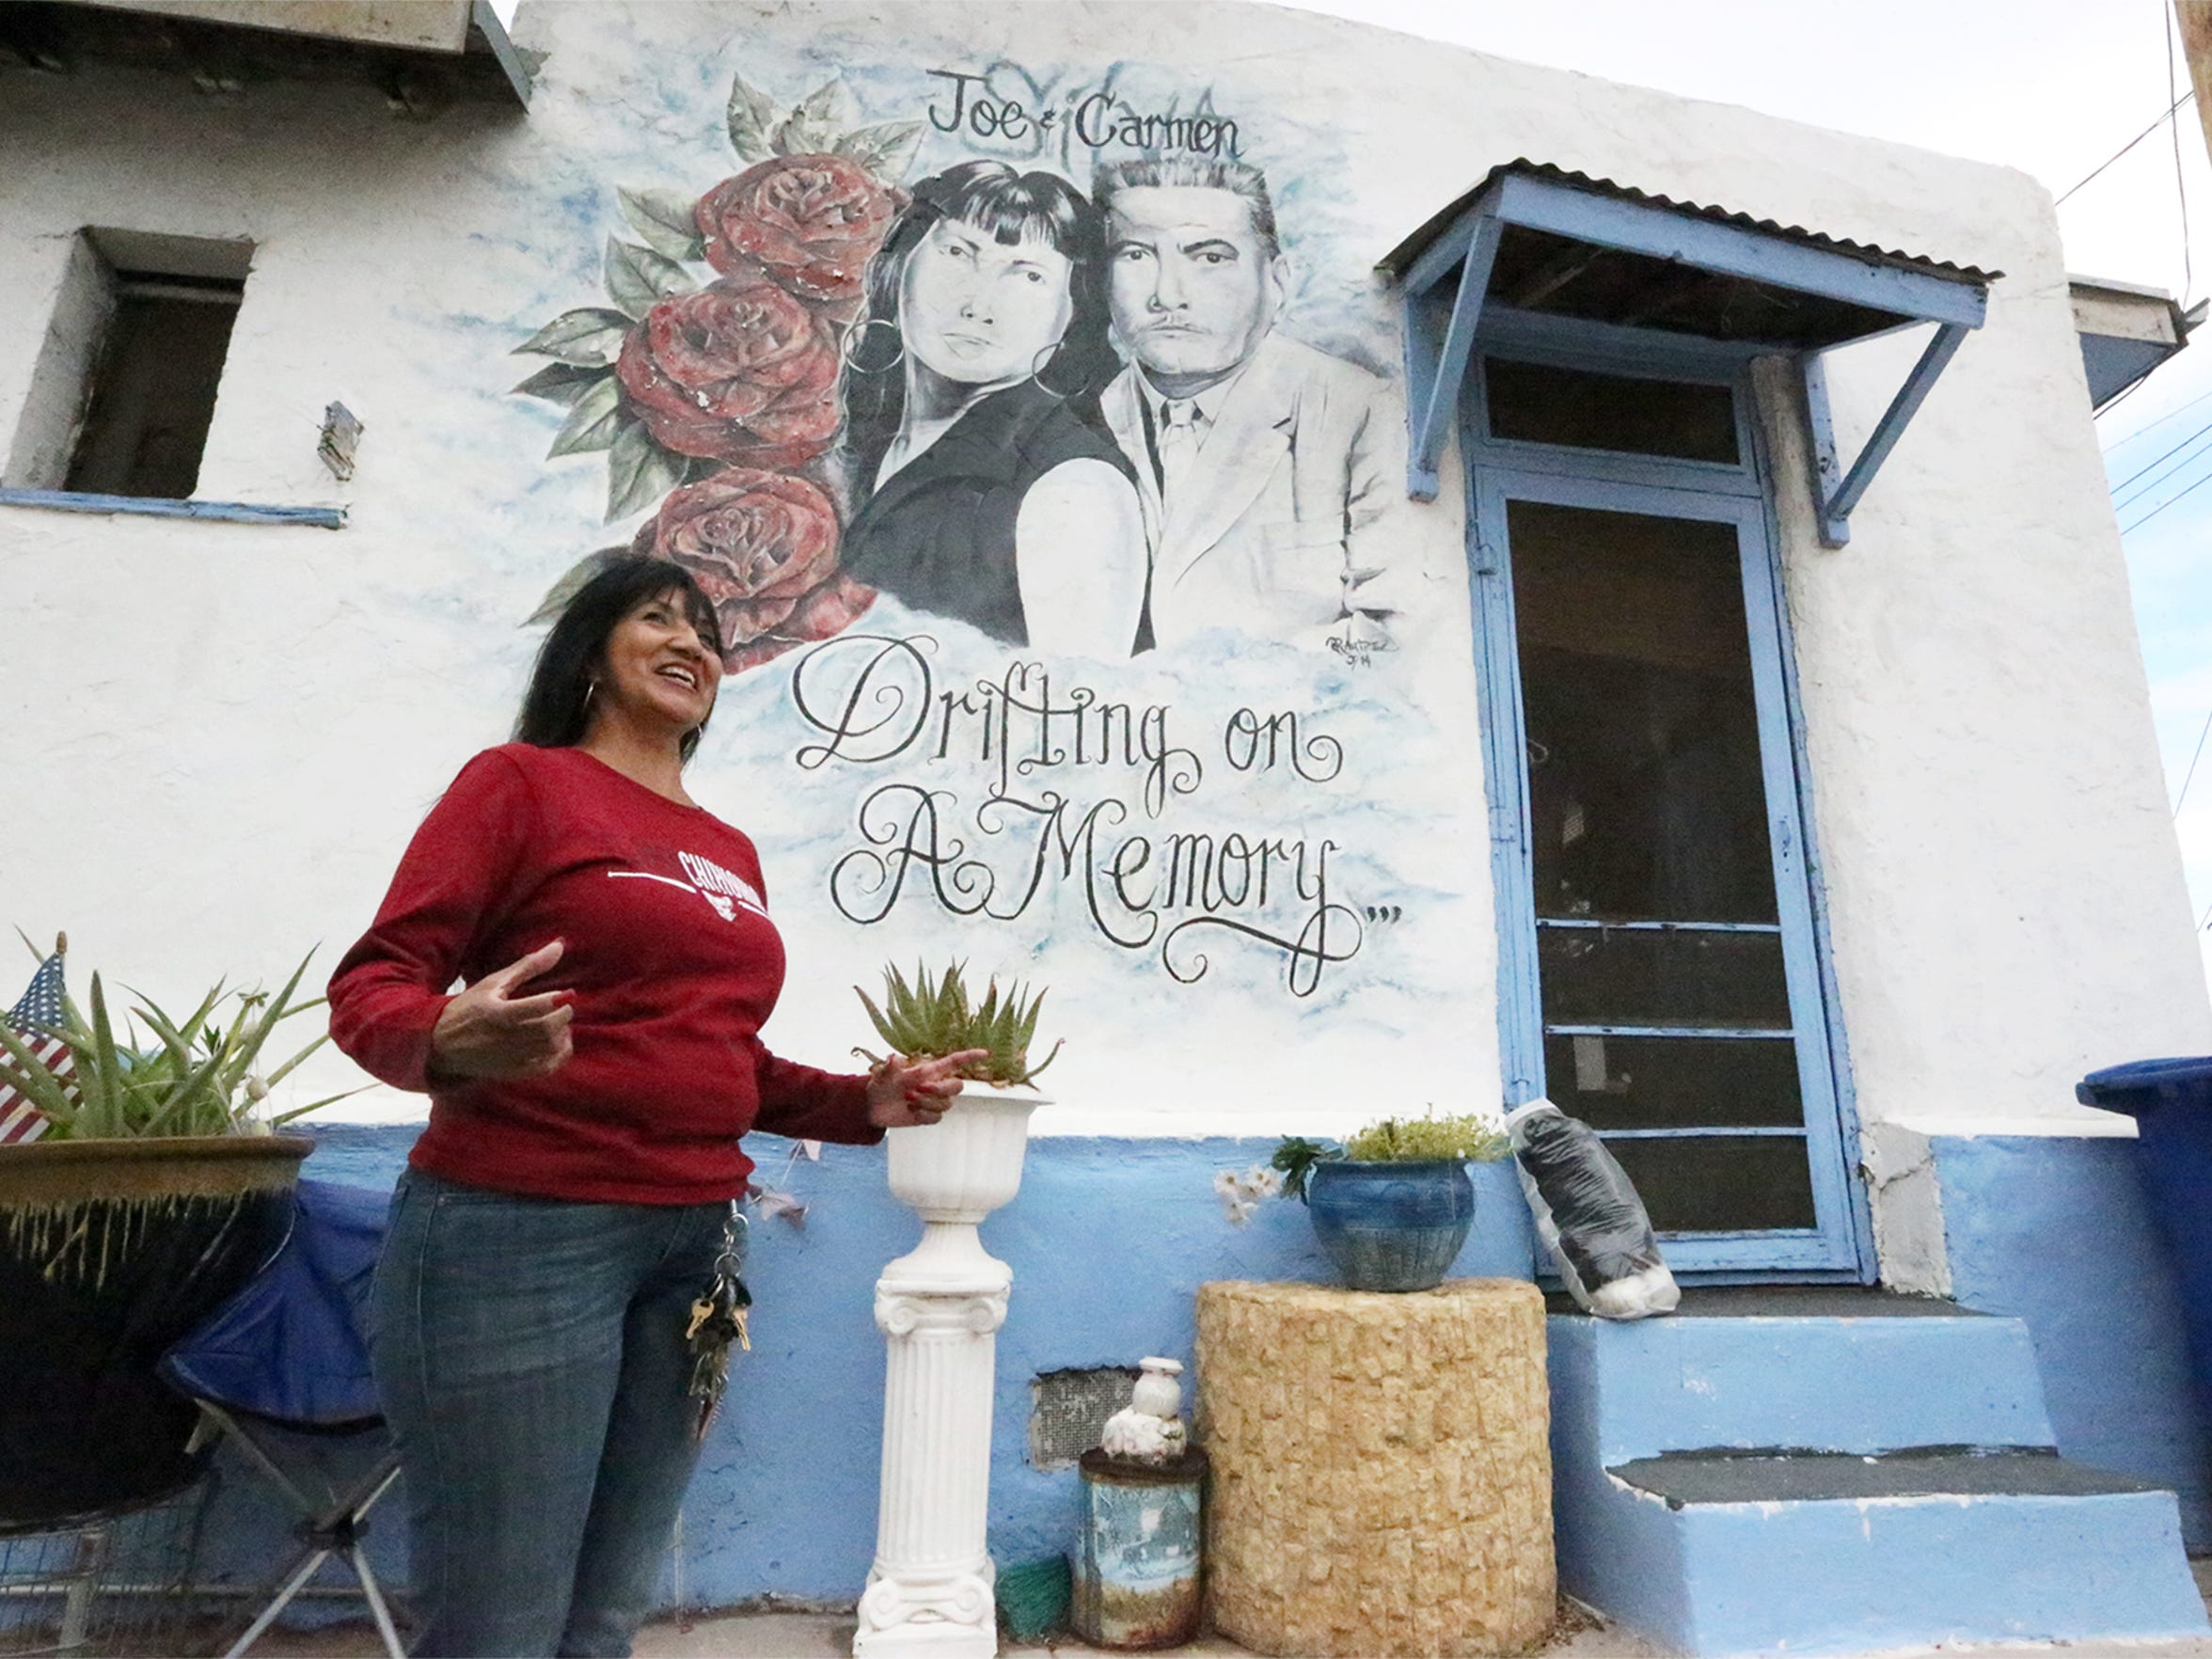 Mannys Silva Rodriguez in front of her home in Chihuahuita.